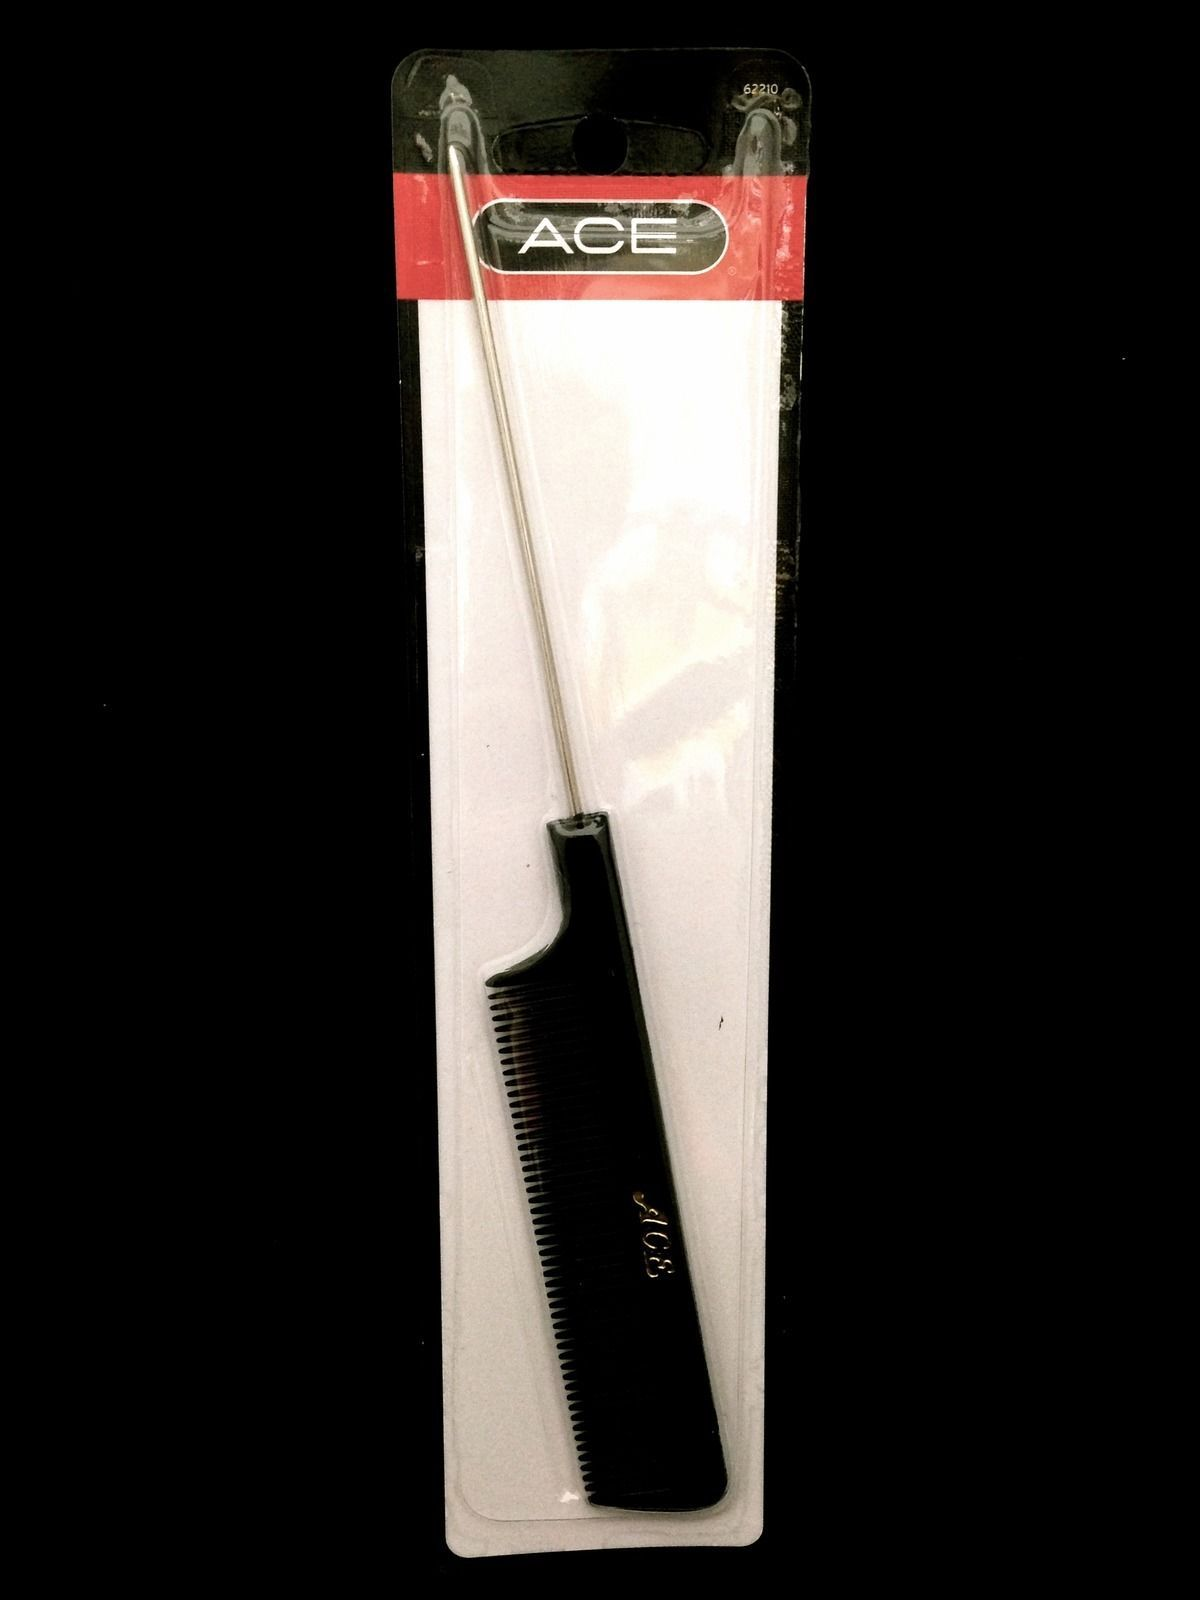 "ACE CURLING AND TEASING COMB W/ METAL TIP 8.5""x1"" #62210"